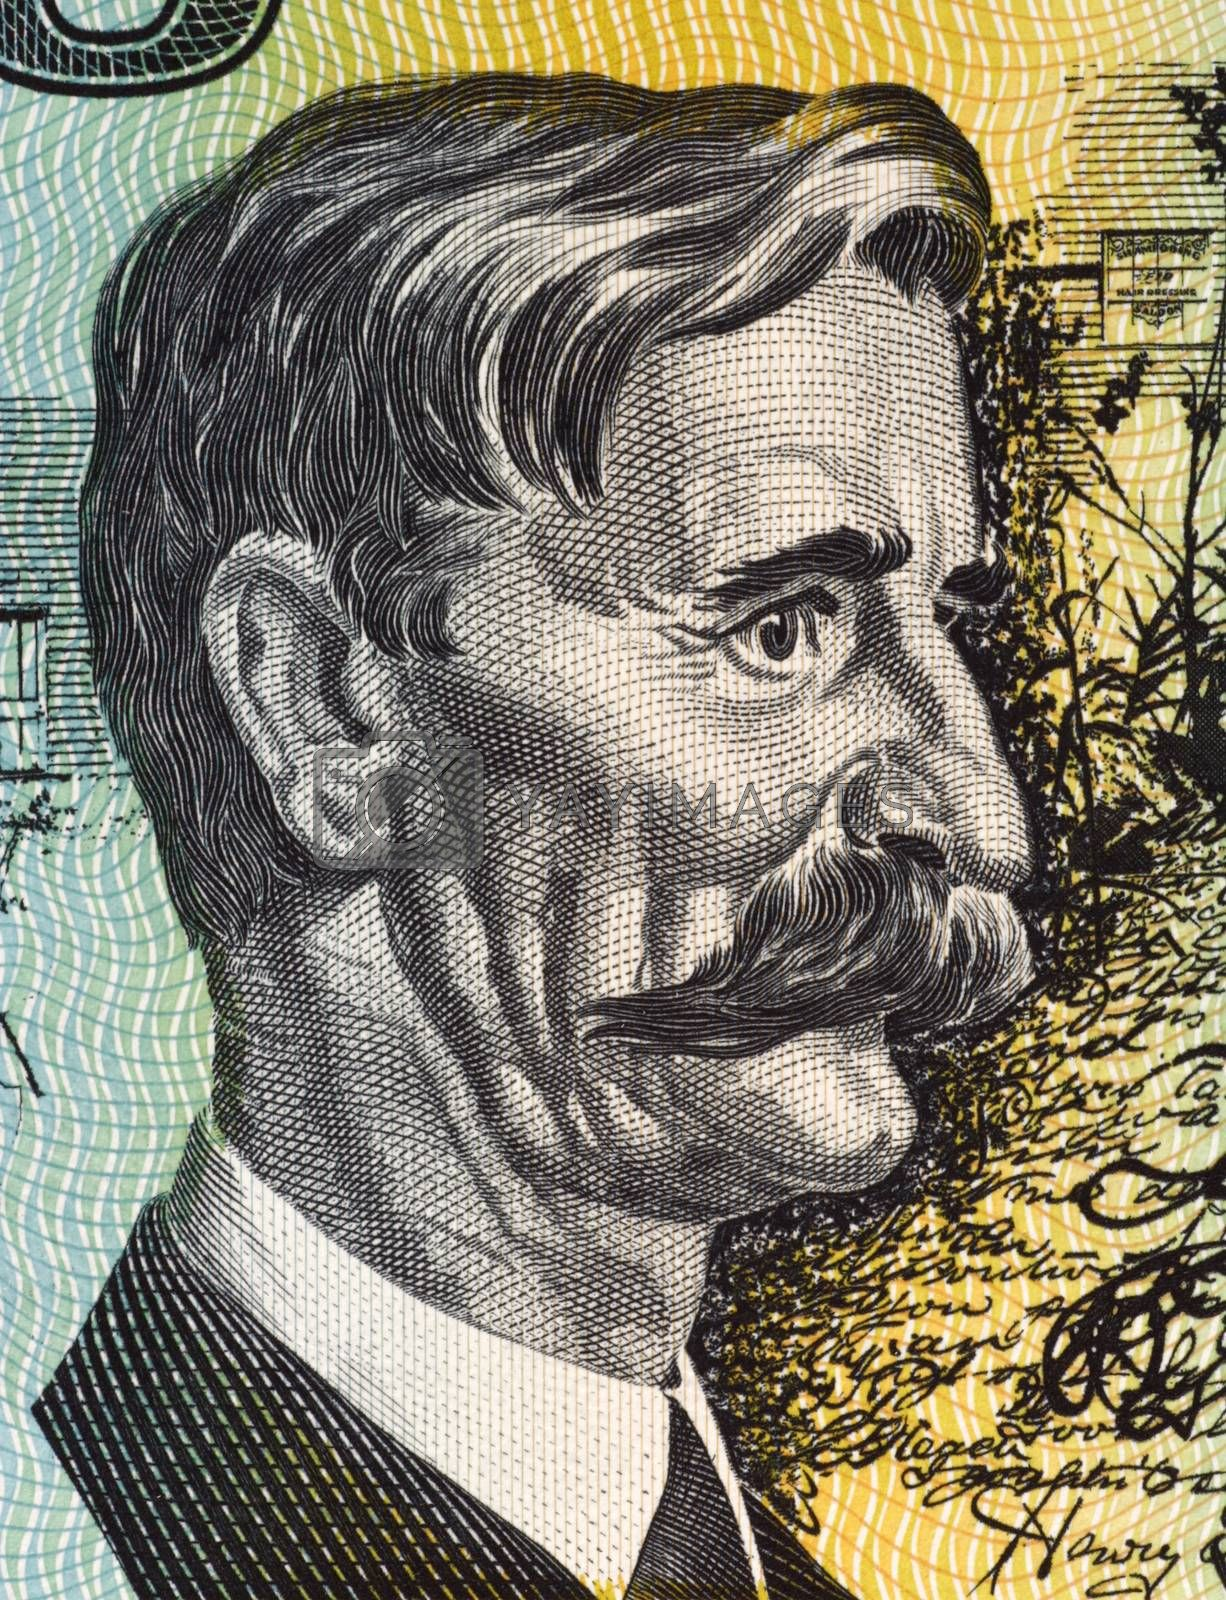 Henry Lawson (1867-1922) on 10 Dollars 1966 banknote from Australia. Australian writer and poet.